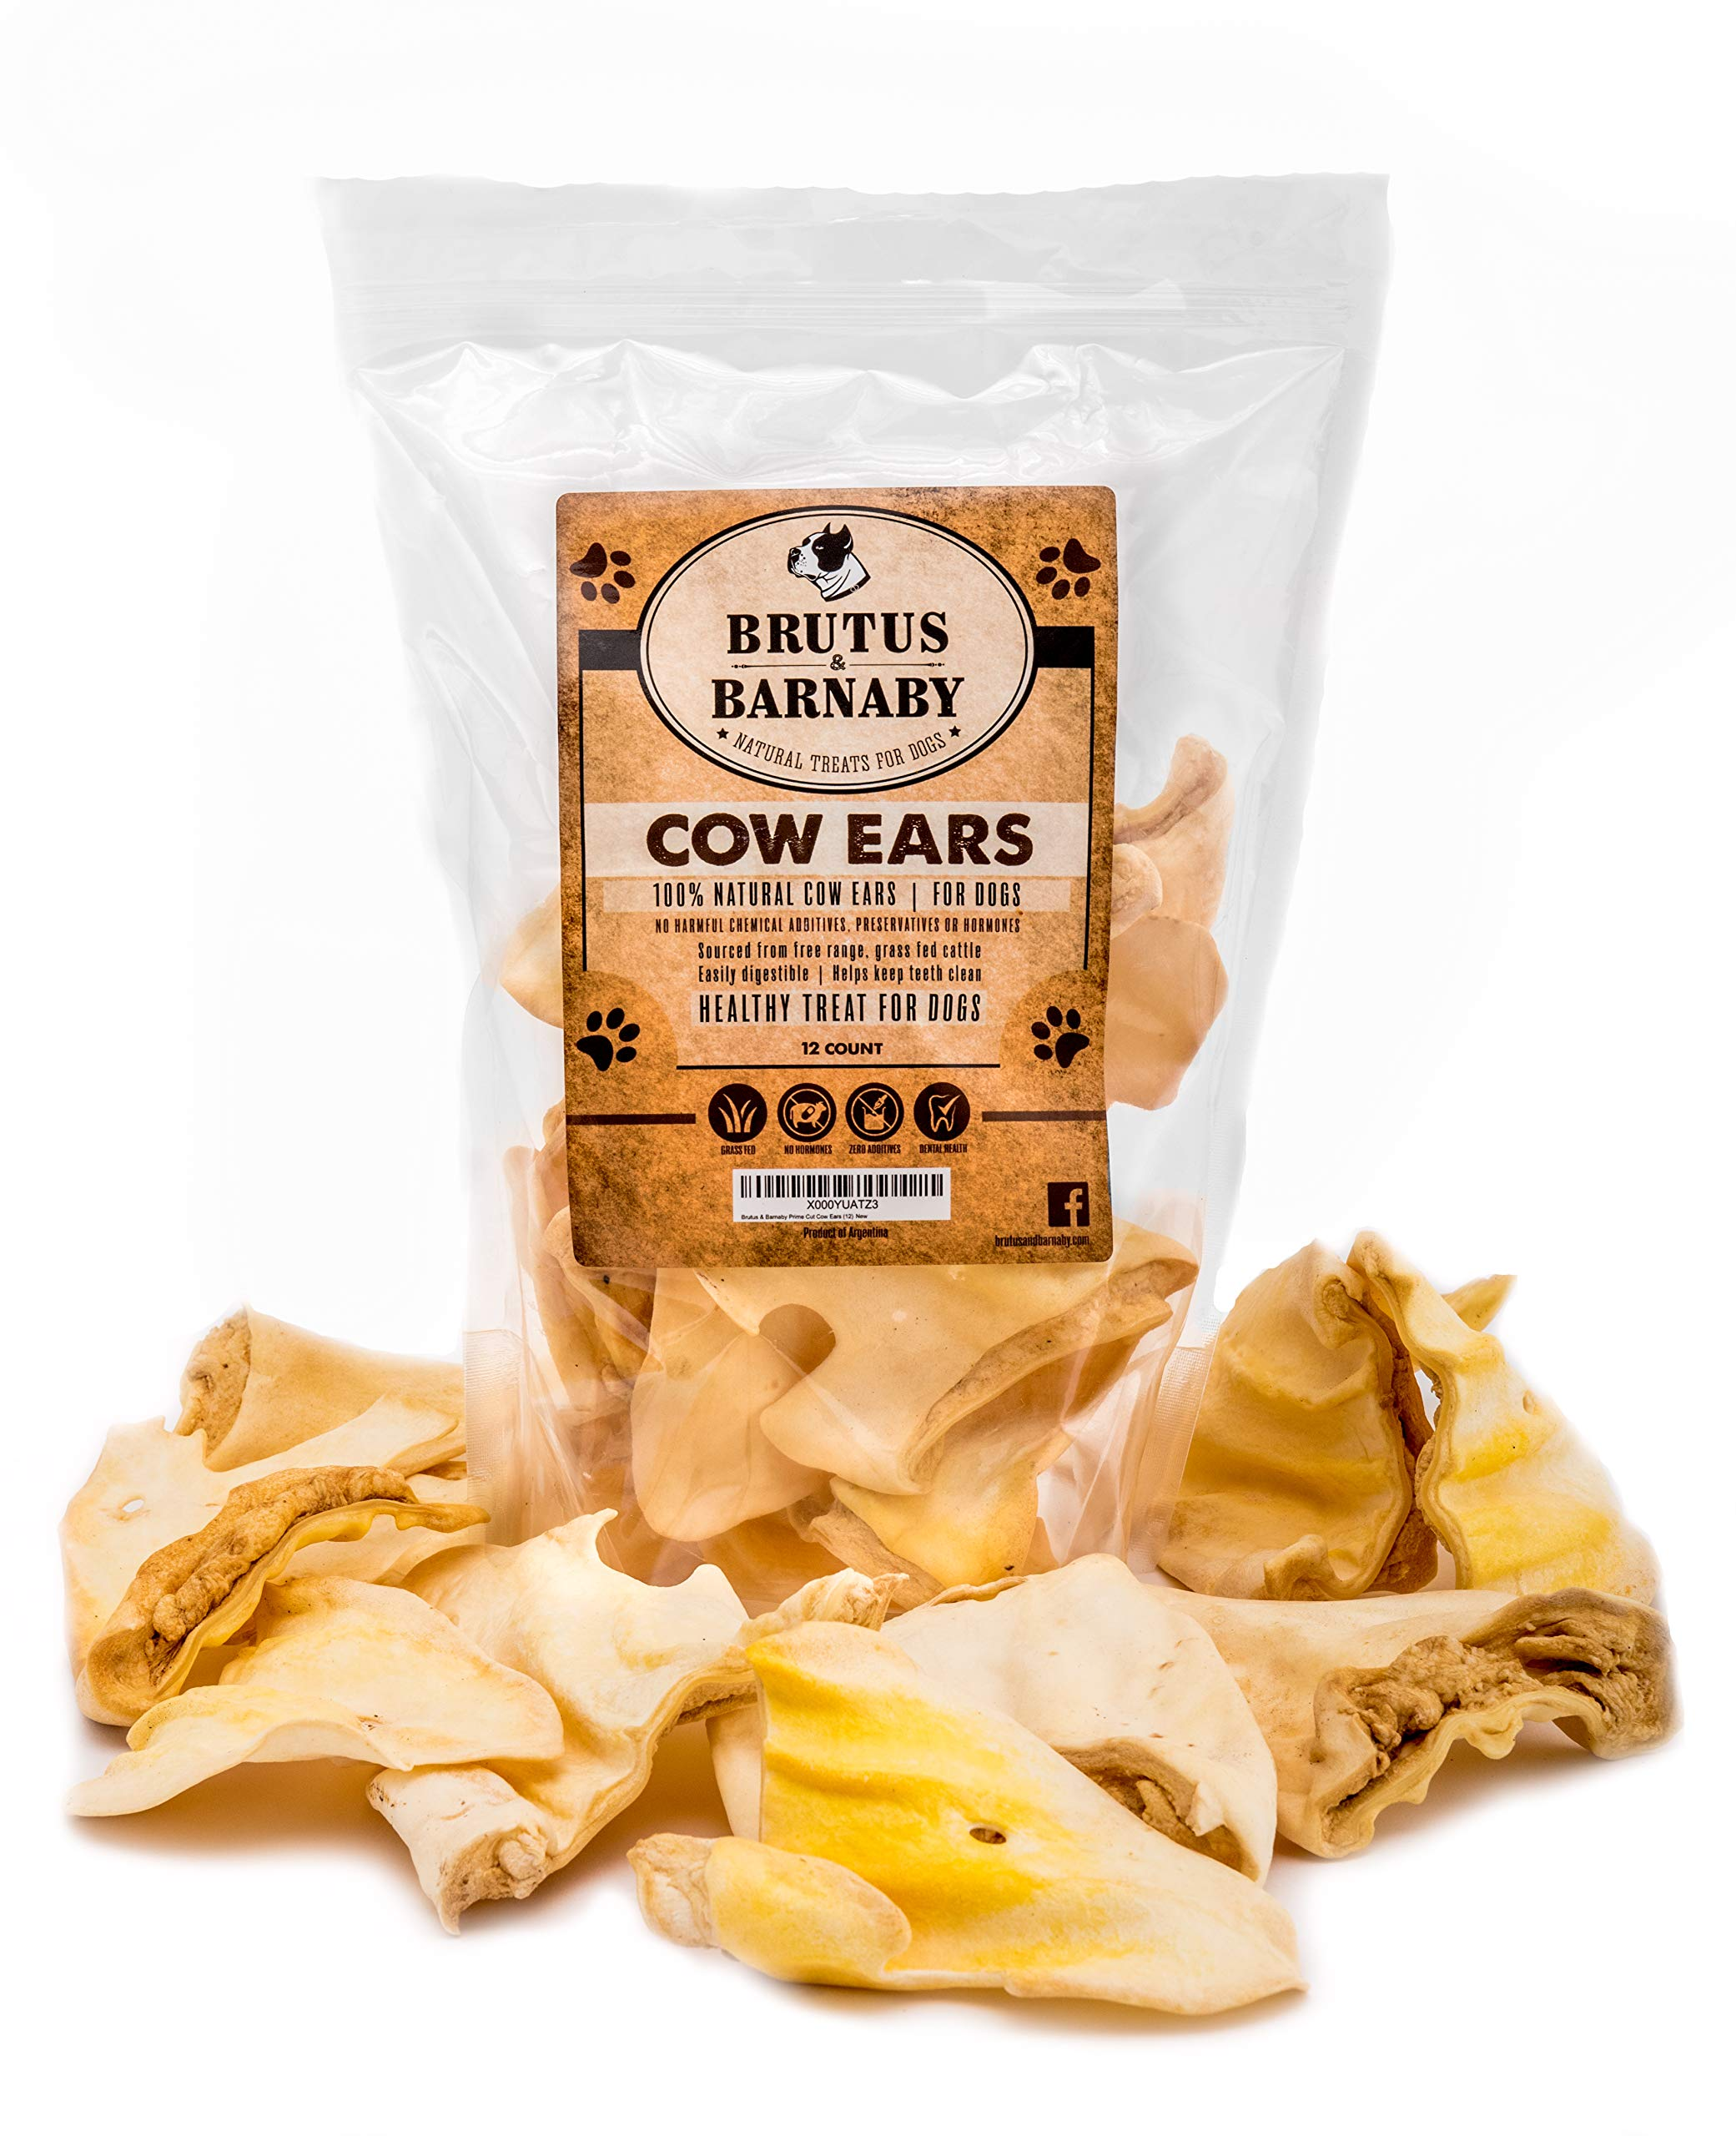 Brutus & Barnaby All Natural, Whole Cow Ears for Dogs, Harvested from Free Range, No Hormone's Added, Grass Fed Cattle, USDA/FDA Approved (100)